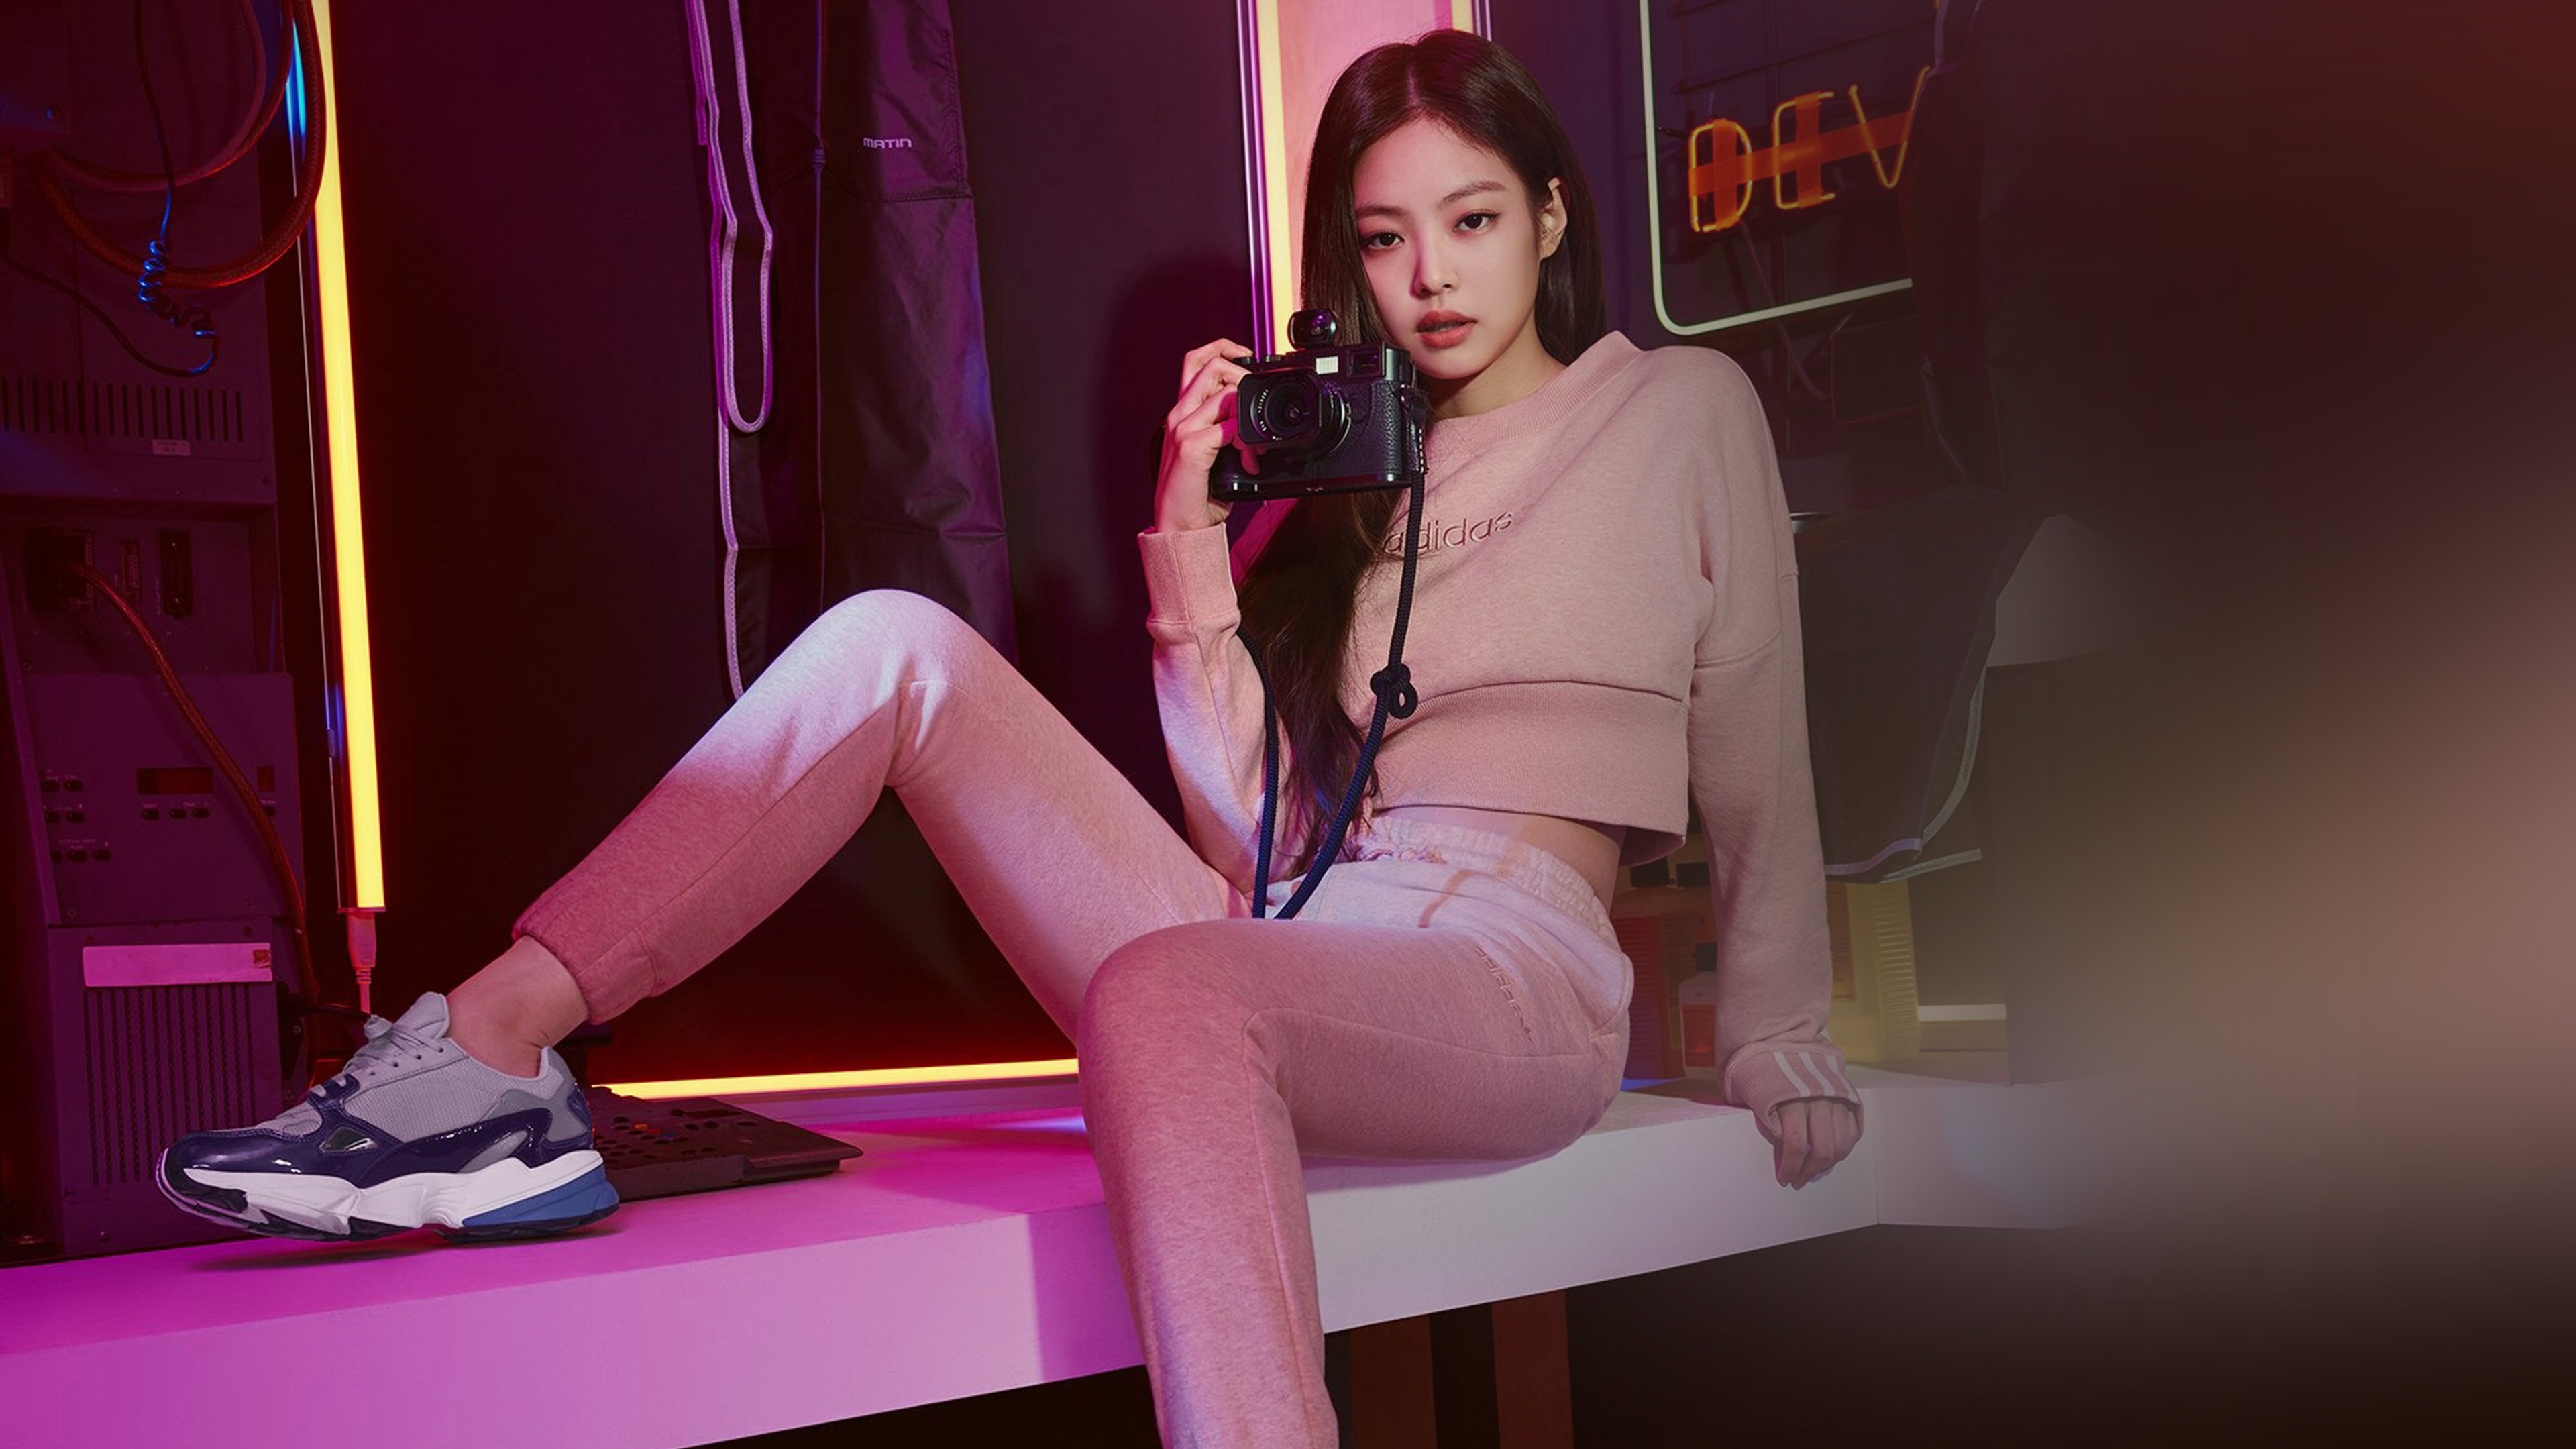 Blackpink Jennie Adidas Hd Music 4k Wallpapers Images